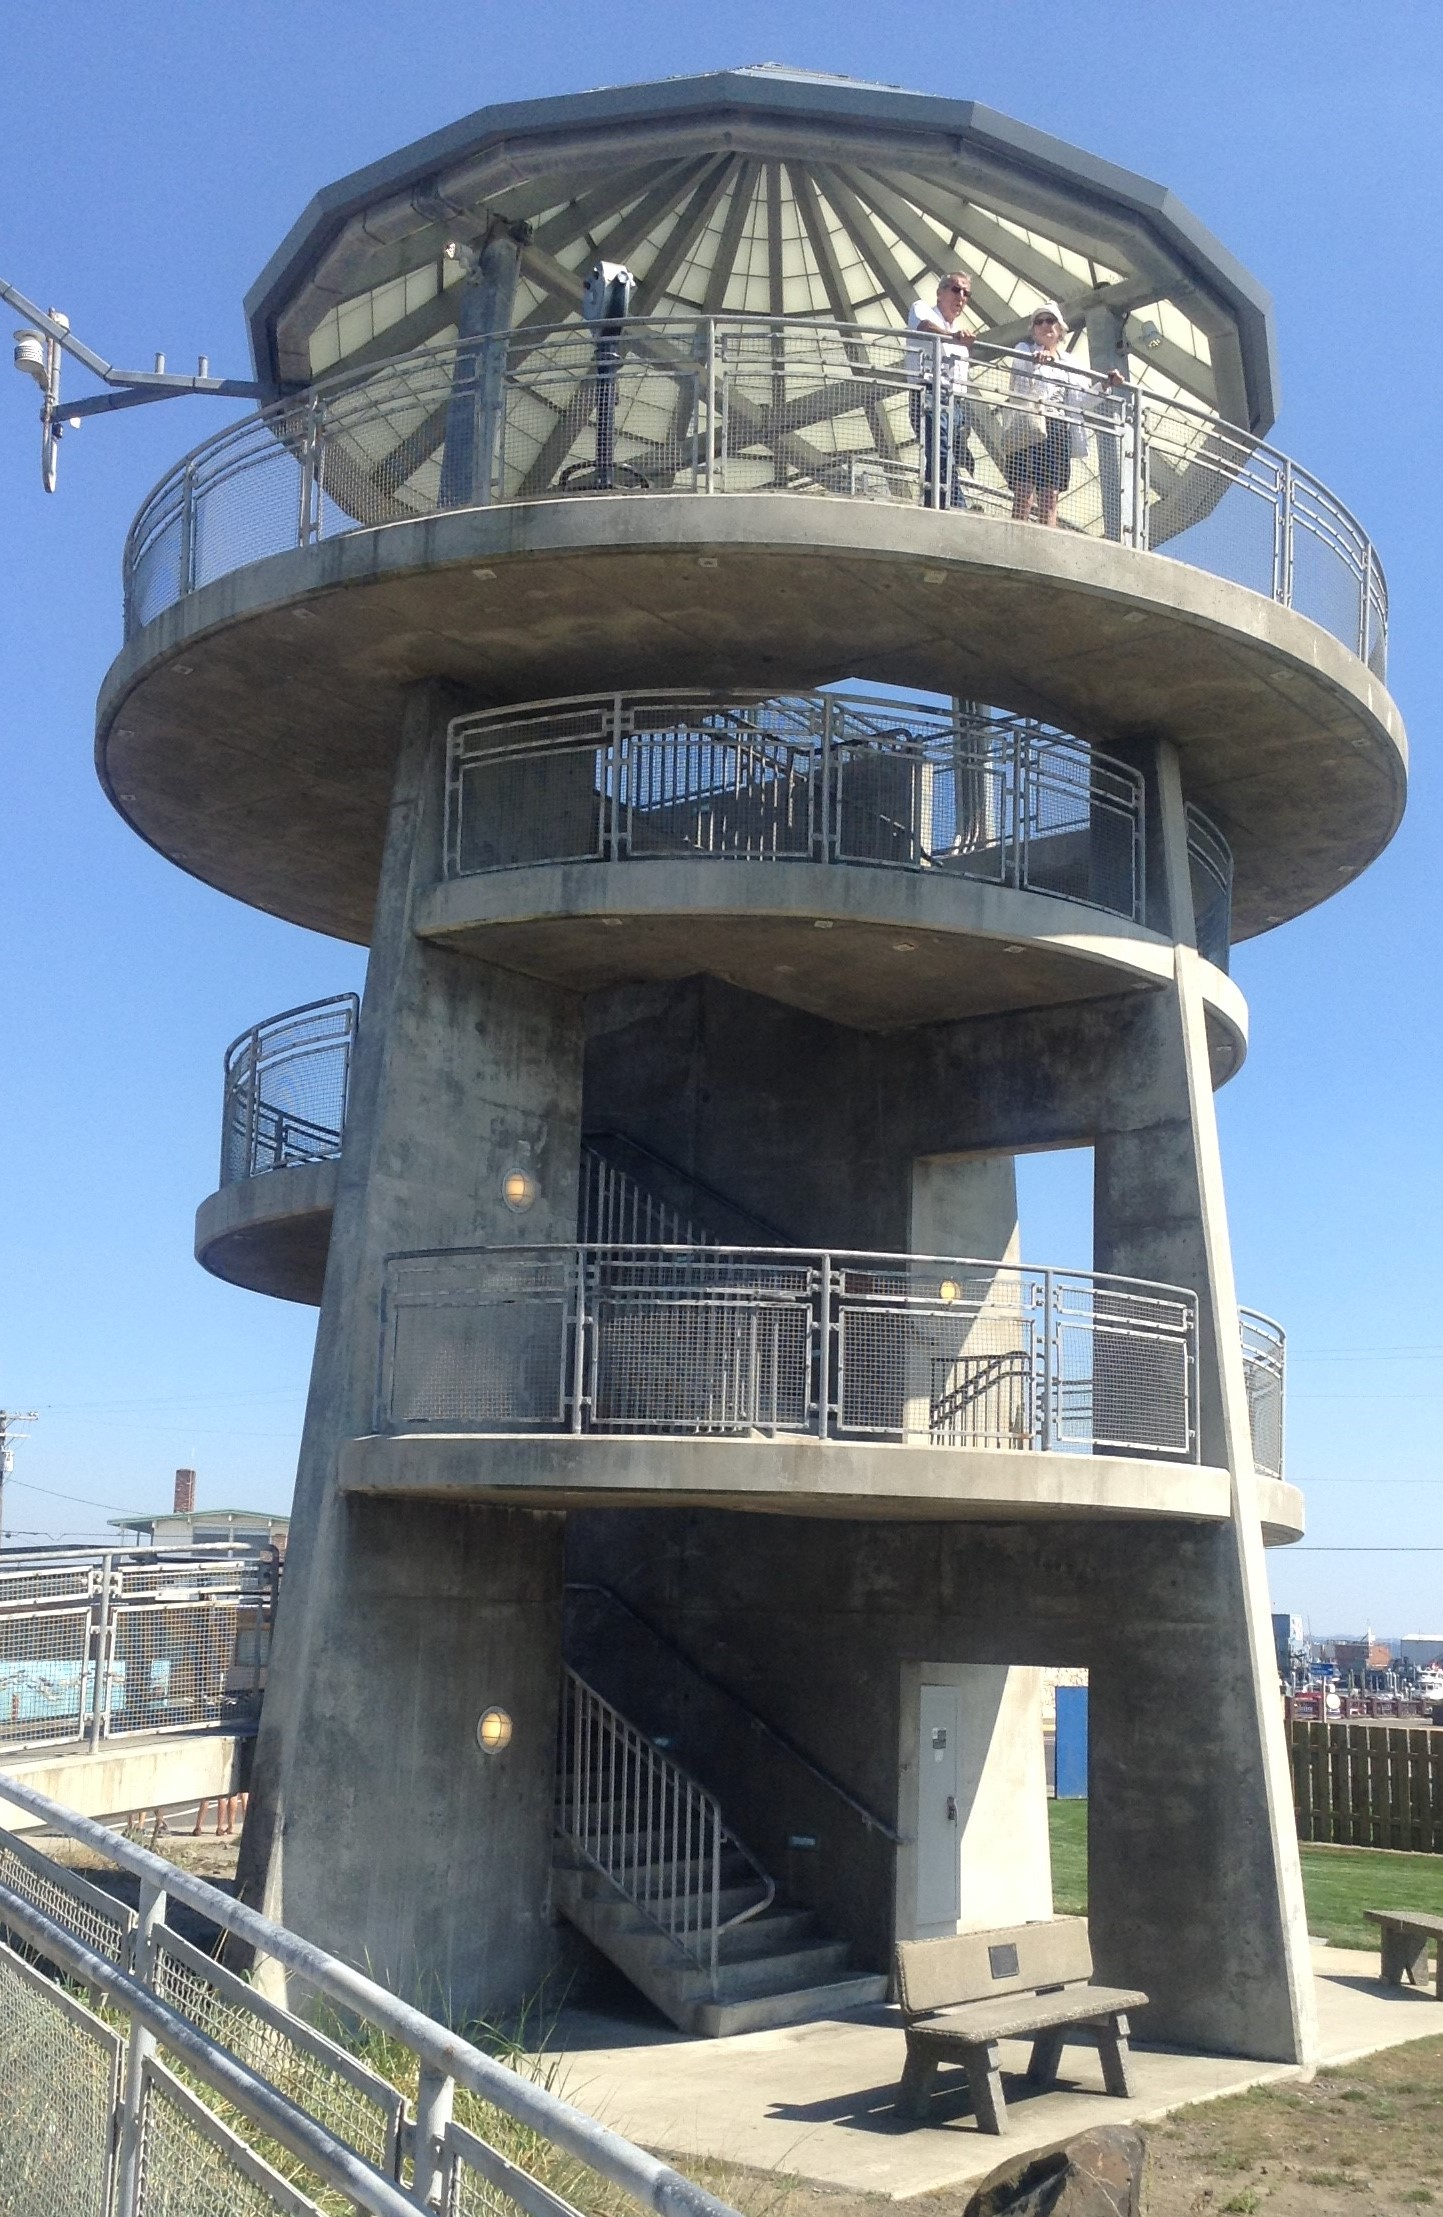 Viewing Tower in Westport, WA- offering amazing views of the Pacific Ocean and the Westport Marina, with distant views of OCean Shores, WA which is divided by the Mouth of Grays Harbor.